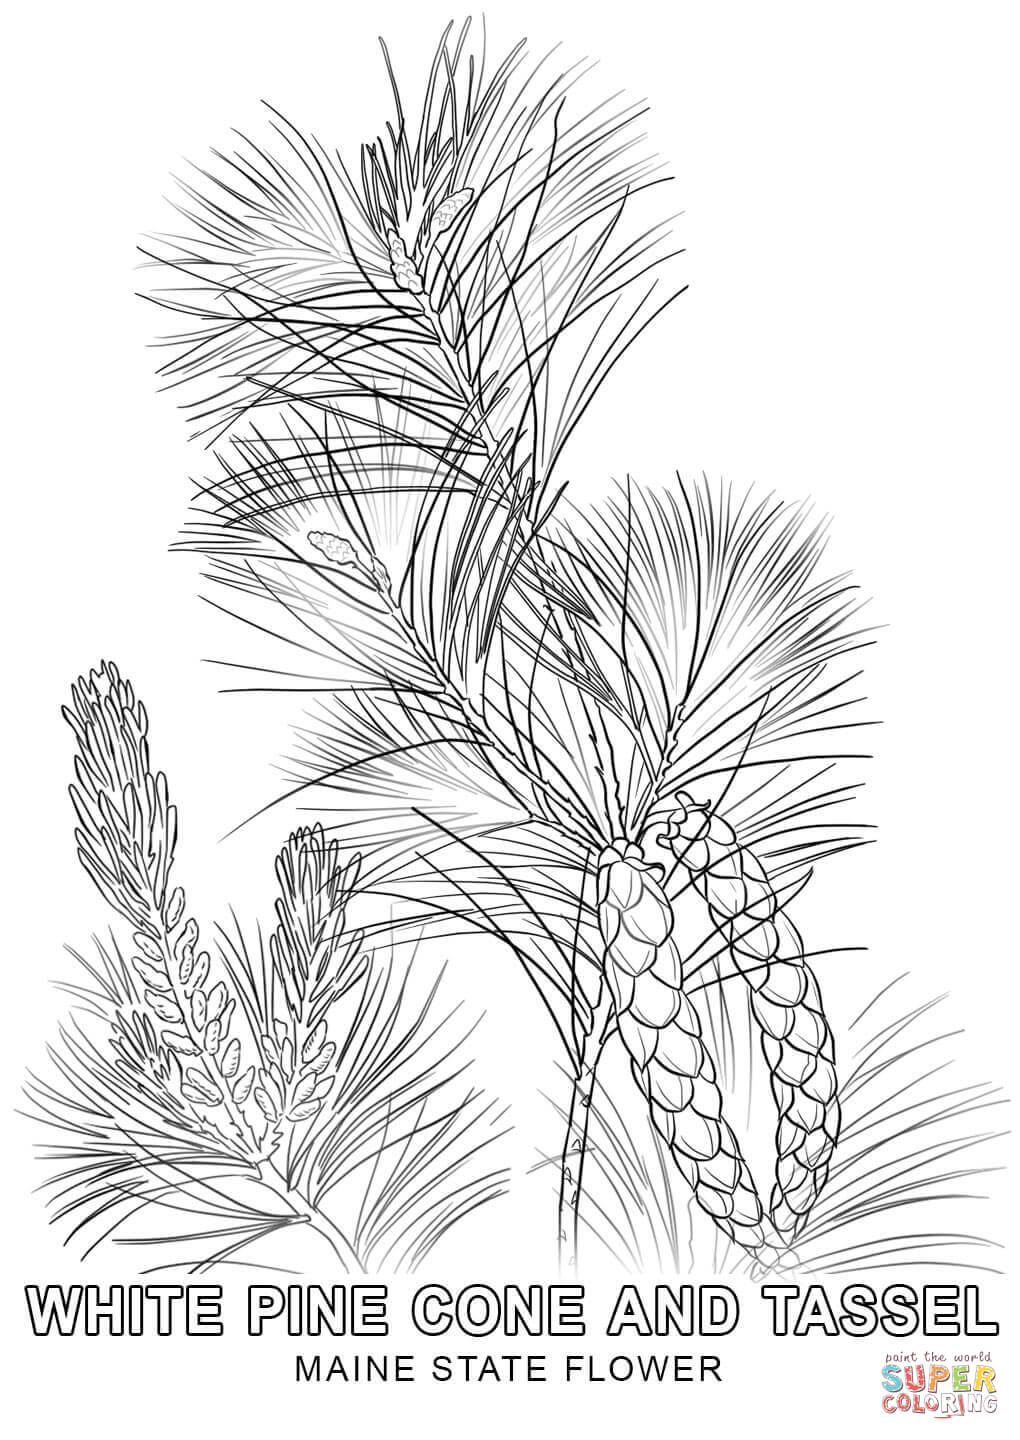 michigan state flower maine state flower coloring page free printable coloring flower state michigan